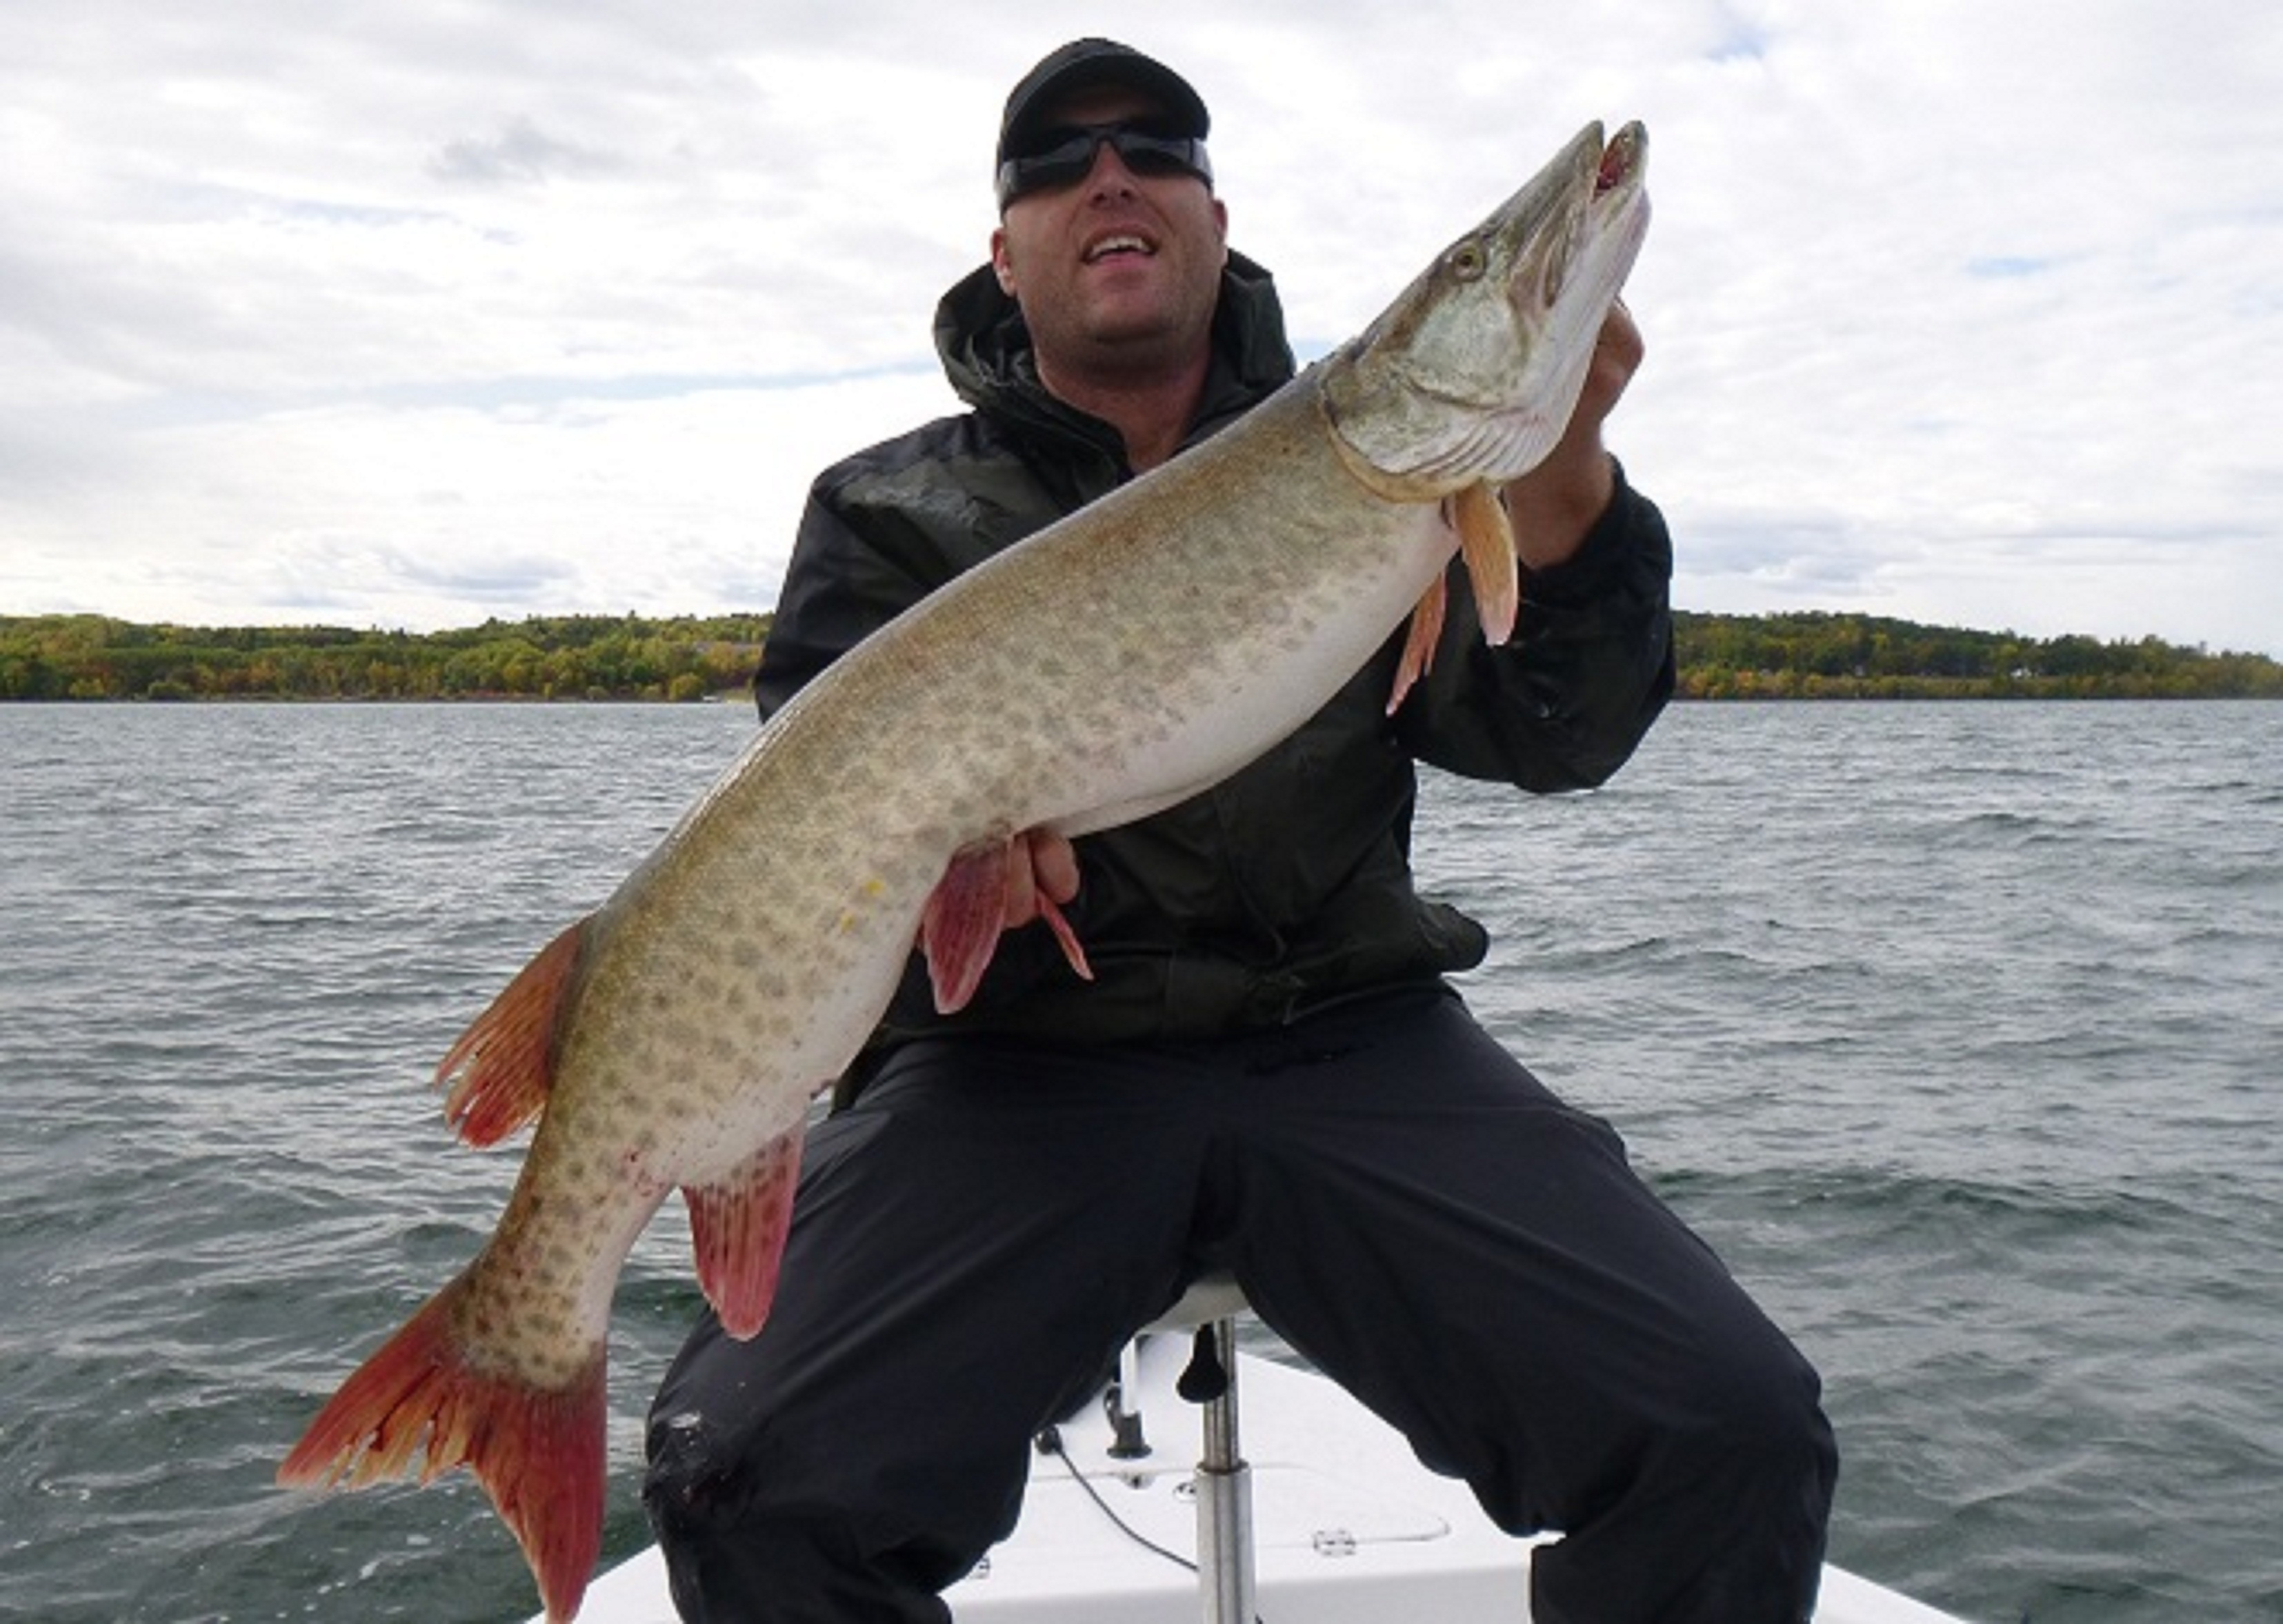 Phil Bauerly Walker Mn  After a fairly dismal season of casting for Muskies, I got out in a big